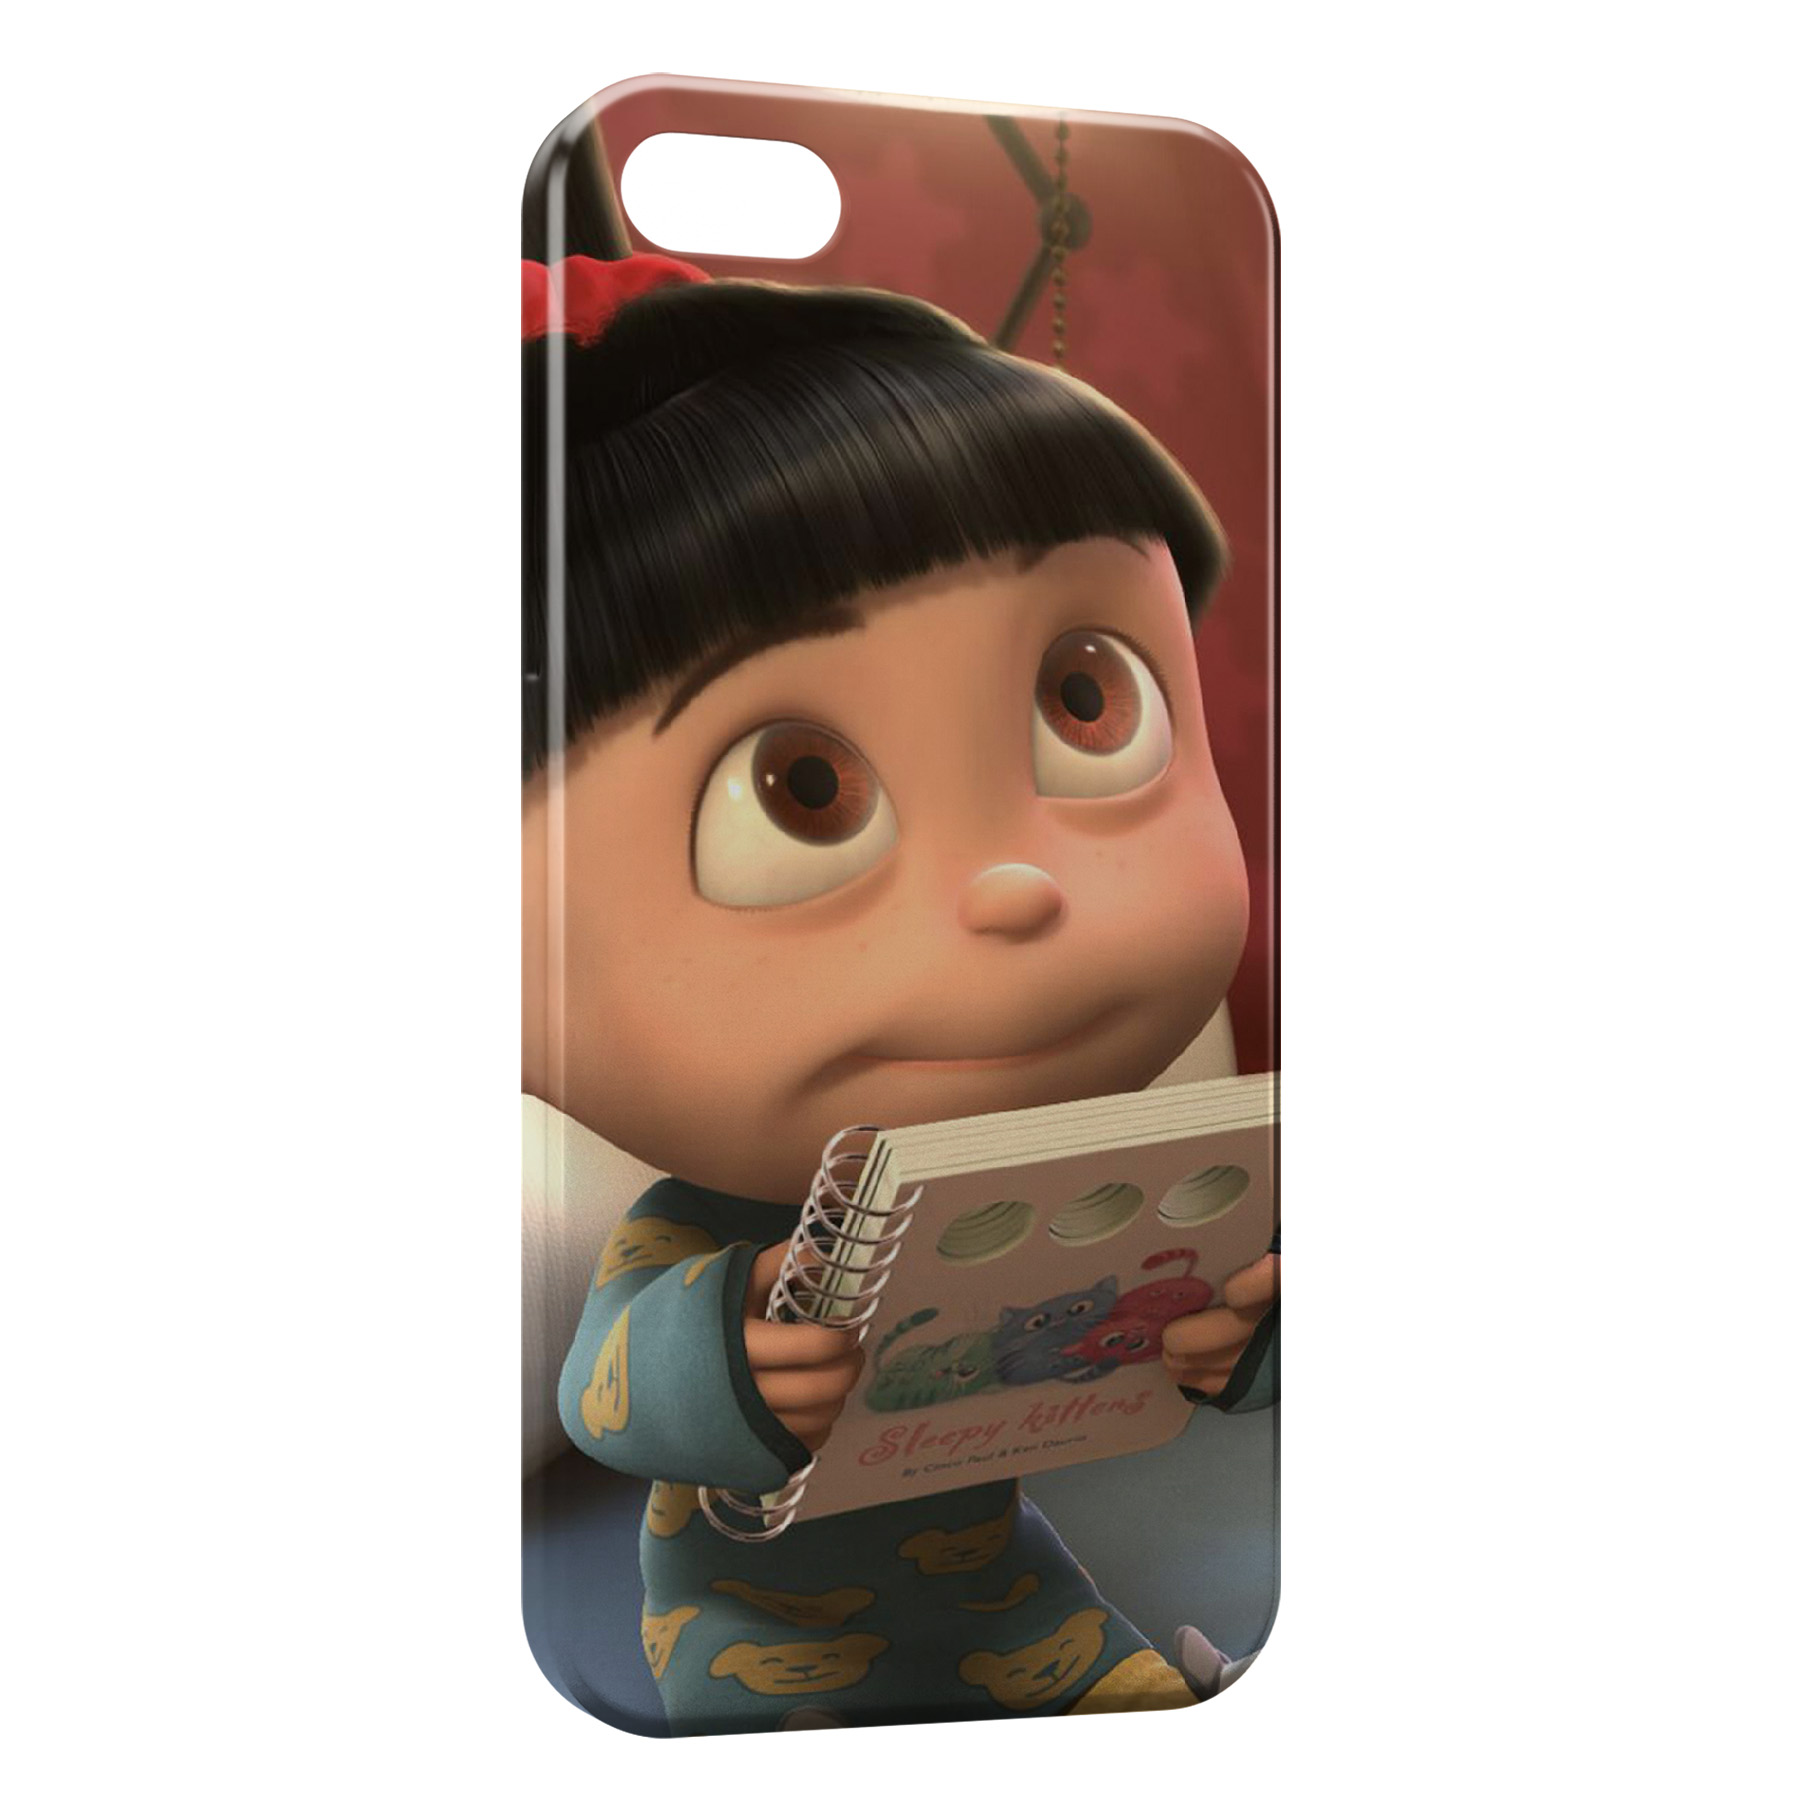 coque iphone 8 plus malefique